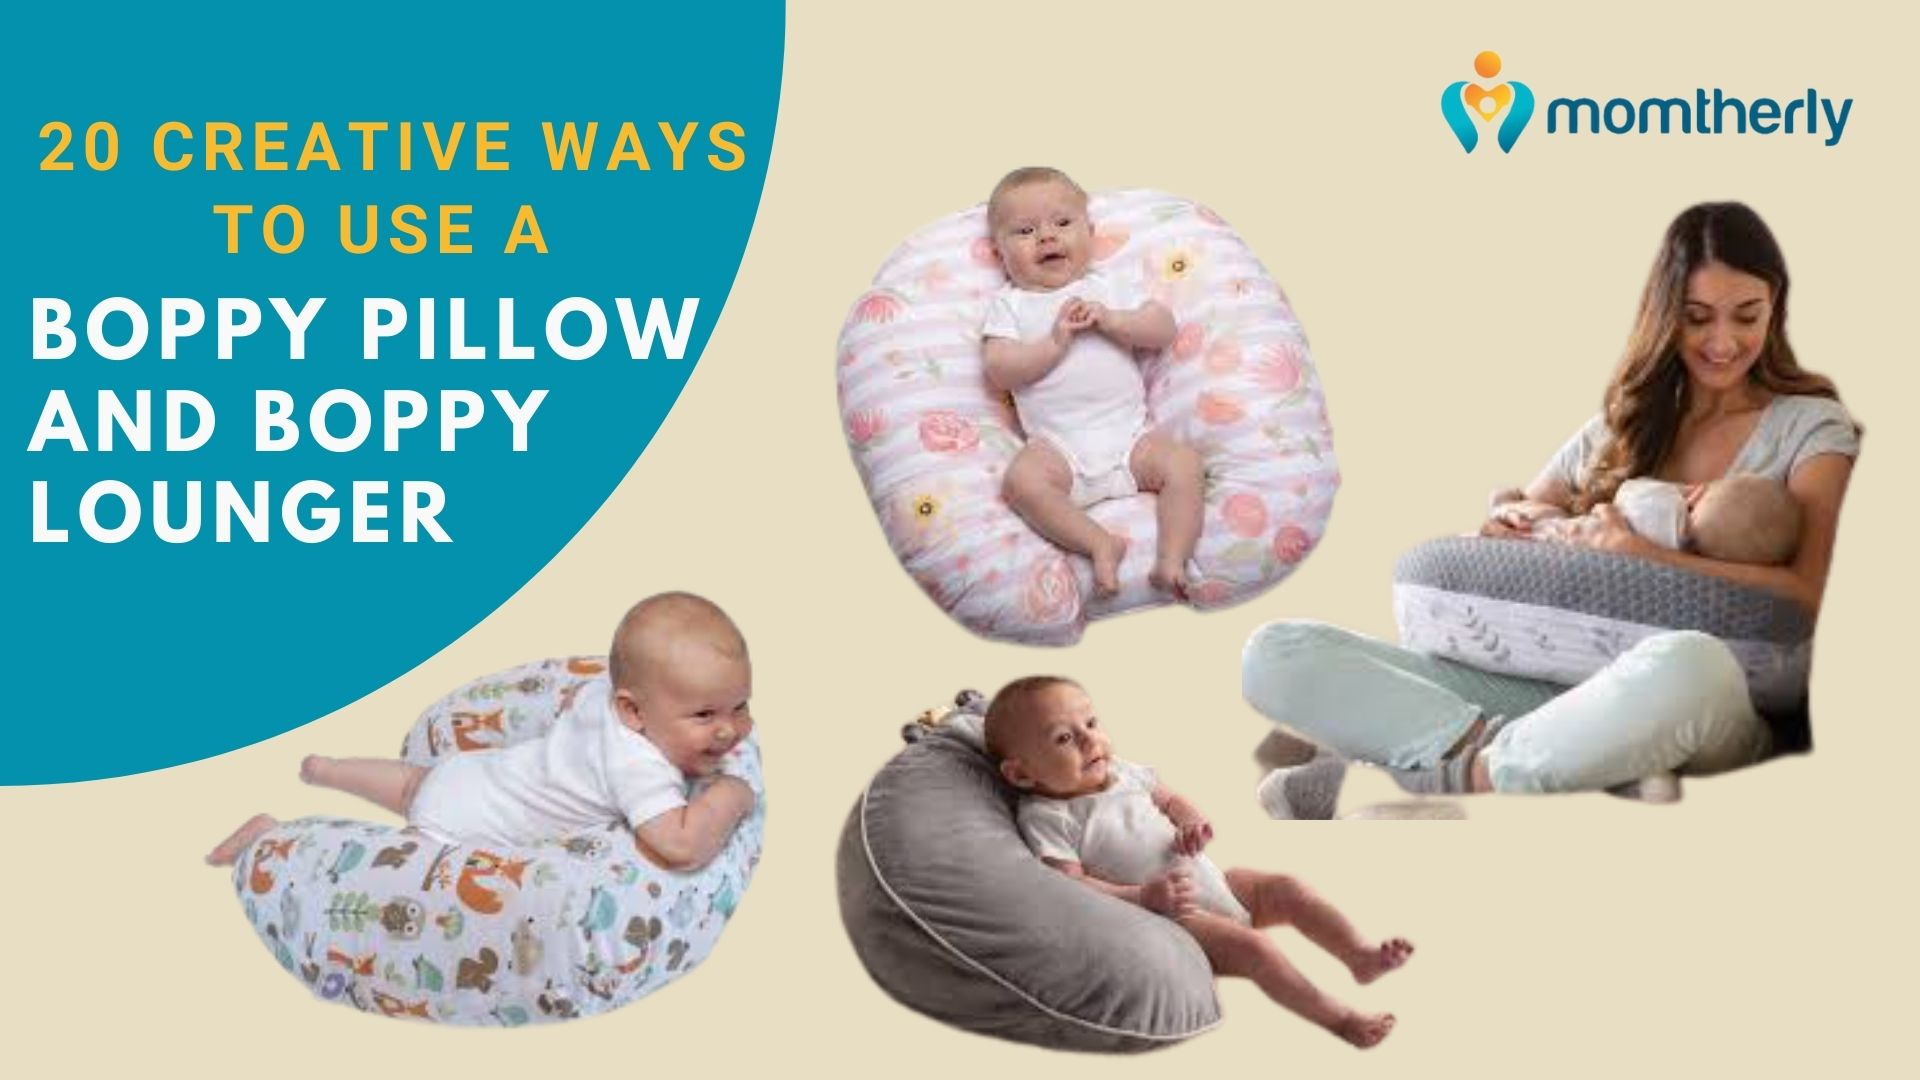 20 creative ways to use a boppy pillow and boppy lounger